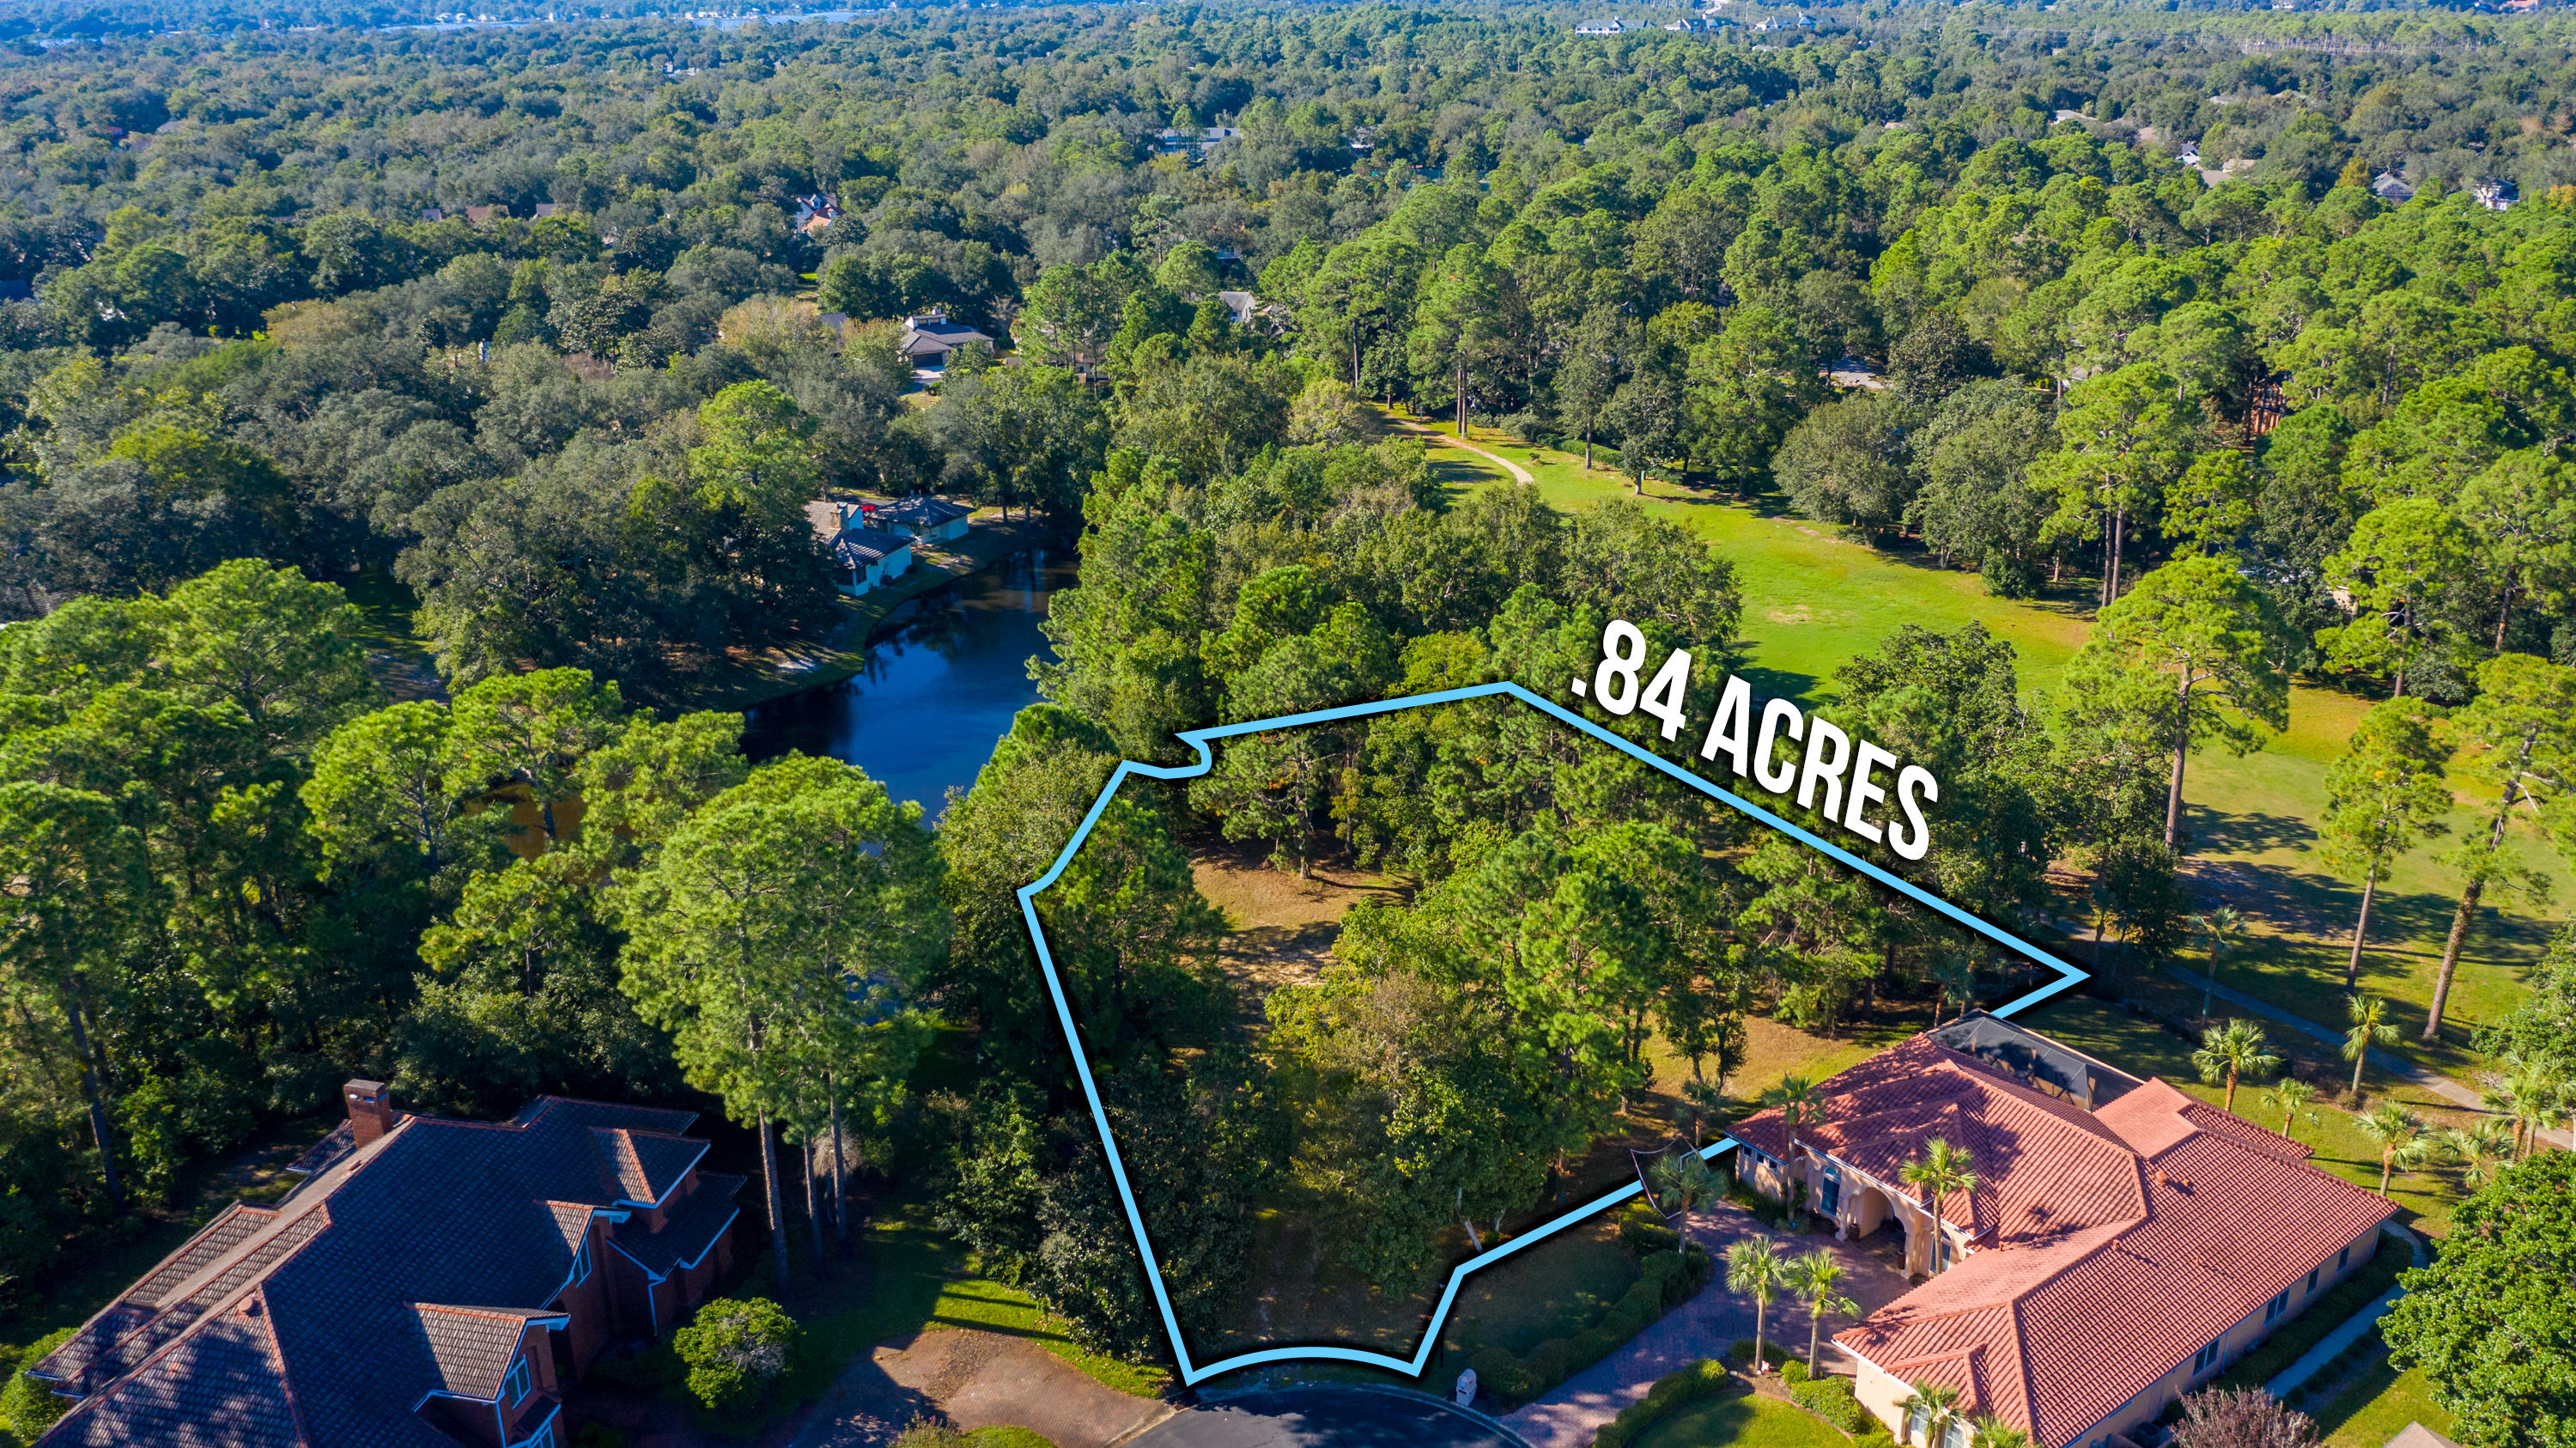 One of the few remaining home sites in the beautiful development of Bluewater Bay. Bluewater Bay is nestled along the beautiful Choctawhatchee Bay, just 15 minutes via the Mid-Bay Bridge from Destin's famous white sand beaches. This premium lot sits in a quiet cul-de-sac with beautiful homes on both sides of it.  This lot offers .84 acres and has a lake on one side and the golf course on the other side. Bluewater Bay offers a Tennis Center, 120 slip full-service marina, biking, hiking trails, 3 swimming pools, play areas and casual dining.  Within minutes you have banks, grocery stores, medical facilities, and shopping.  Build your dream home today!